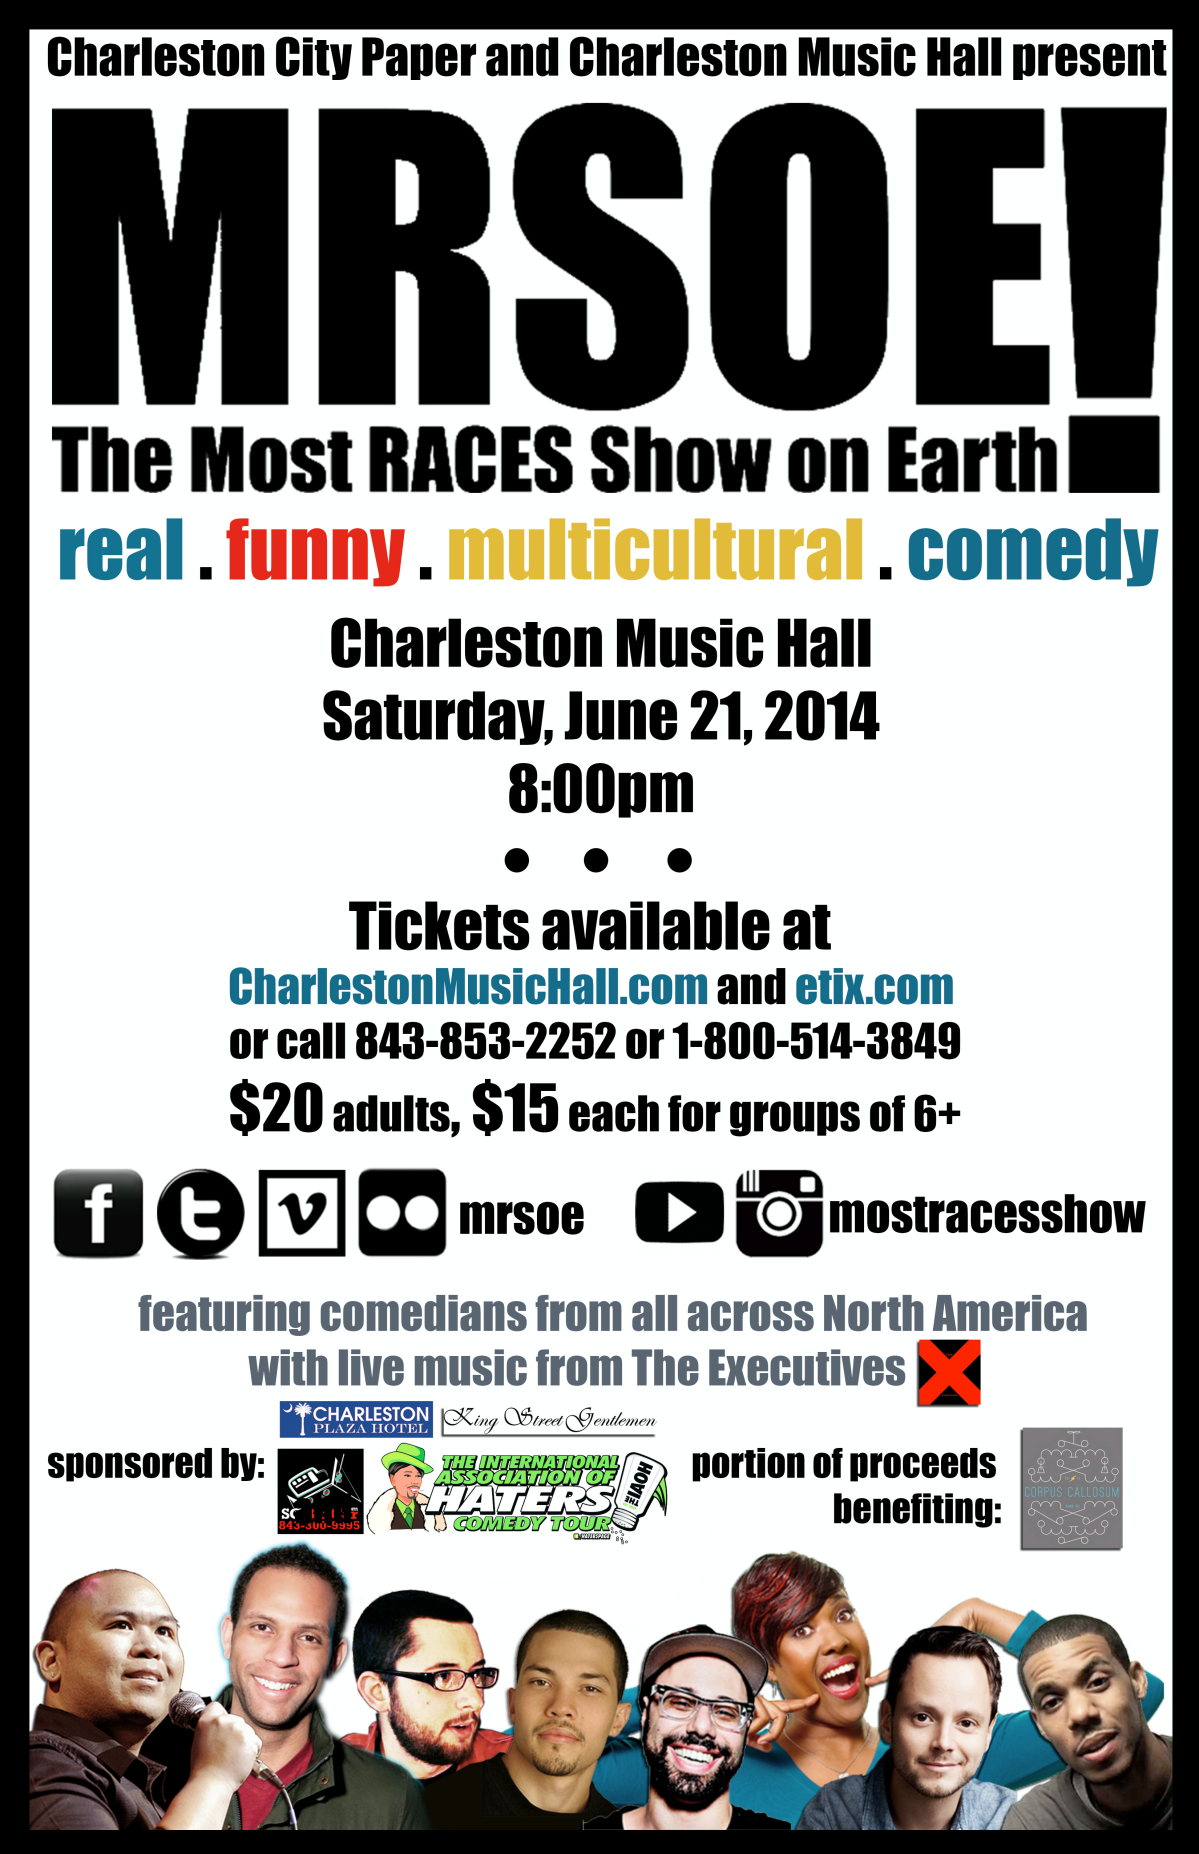 The Most RACES Show on Earth! @ The Charleston Music Hall